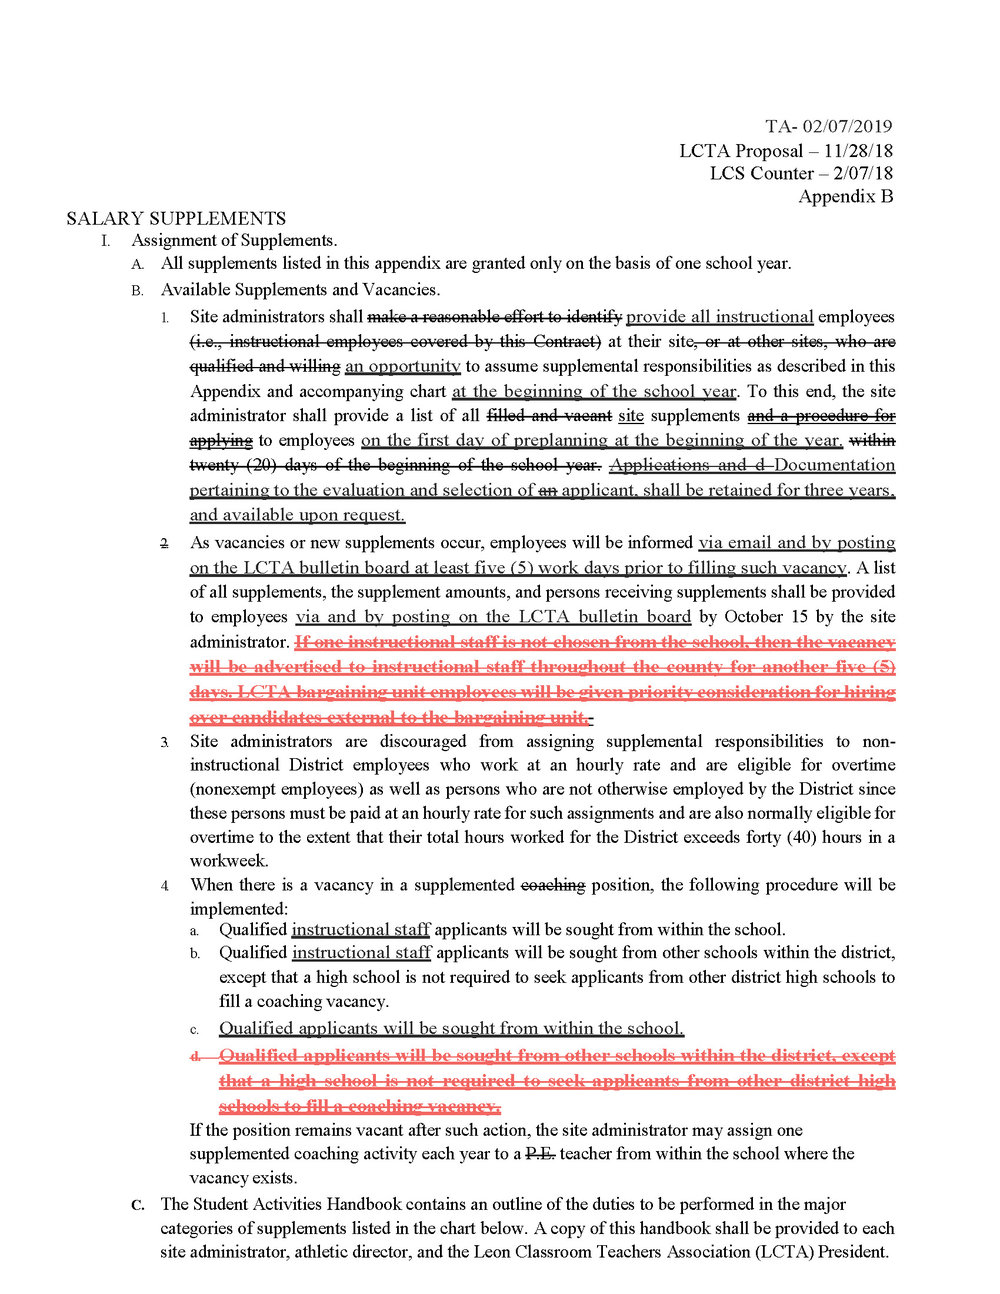 LCTA_LCS Contract TAs 18_19_Page_09.jpg